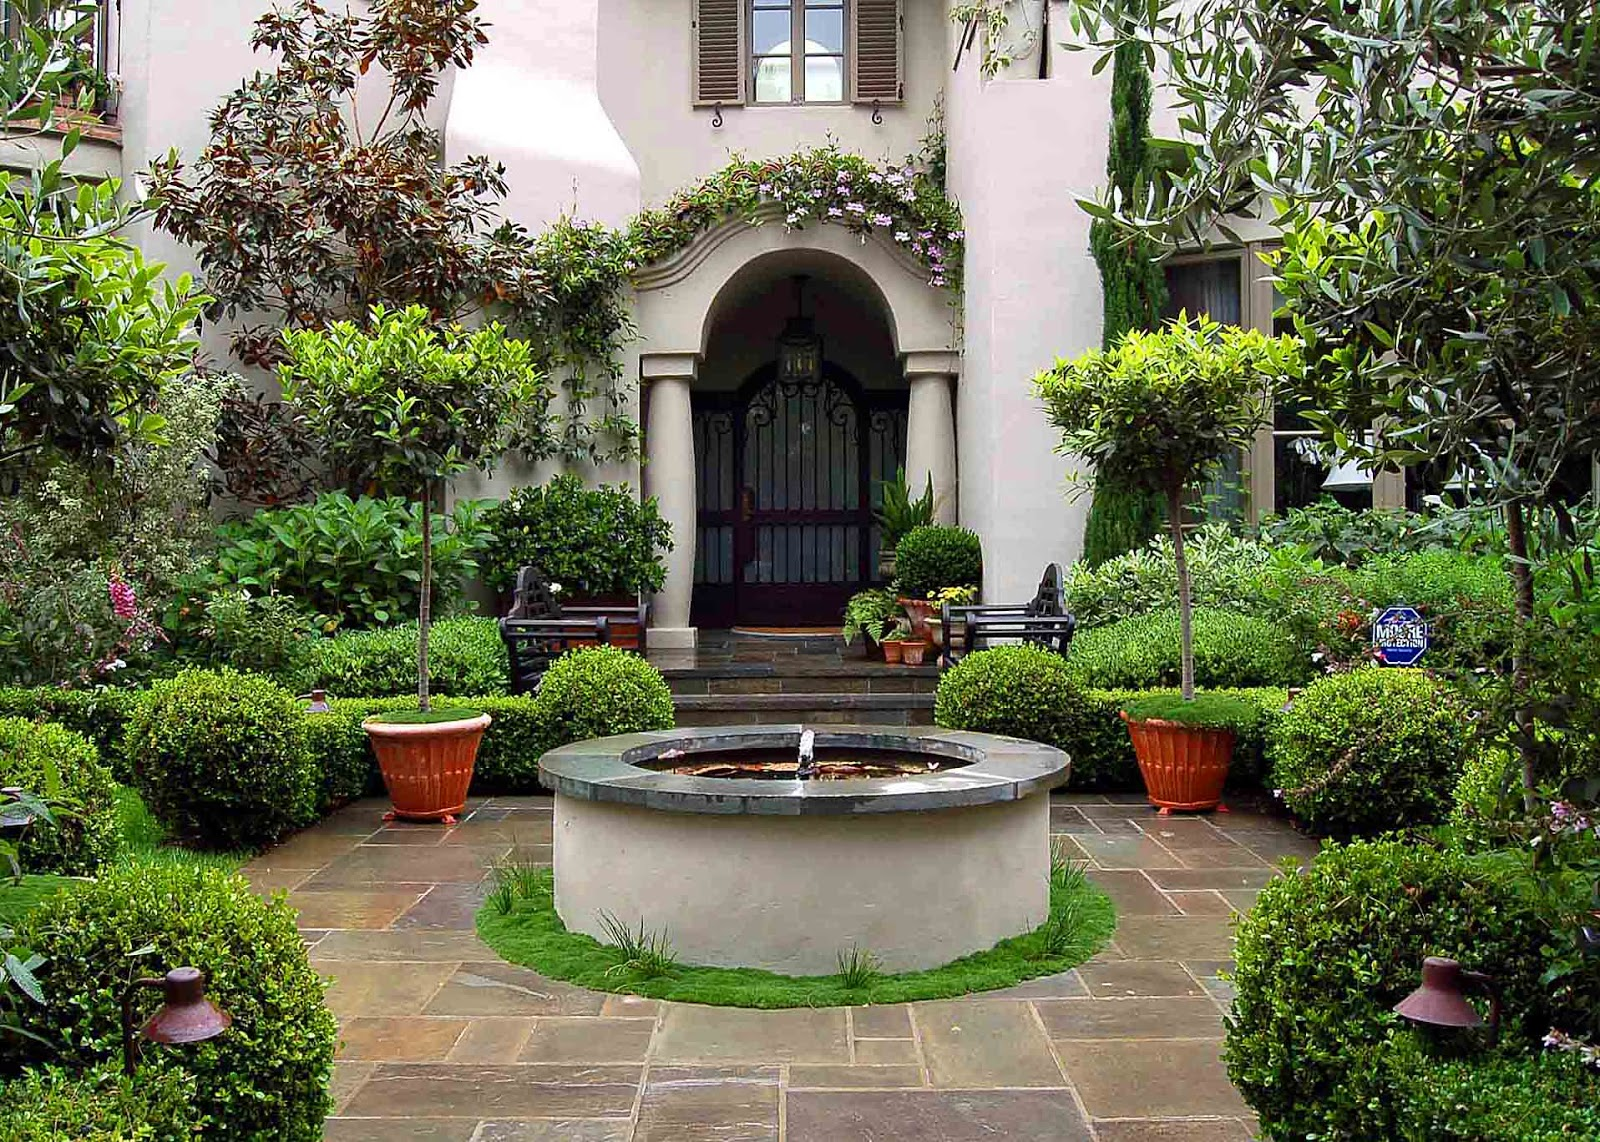 Environmental concept earth friendly landscapes for Italian courtyard garden design ideas